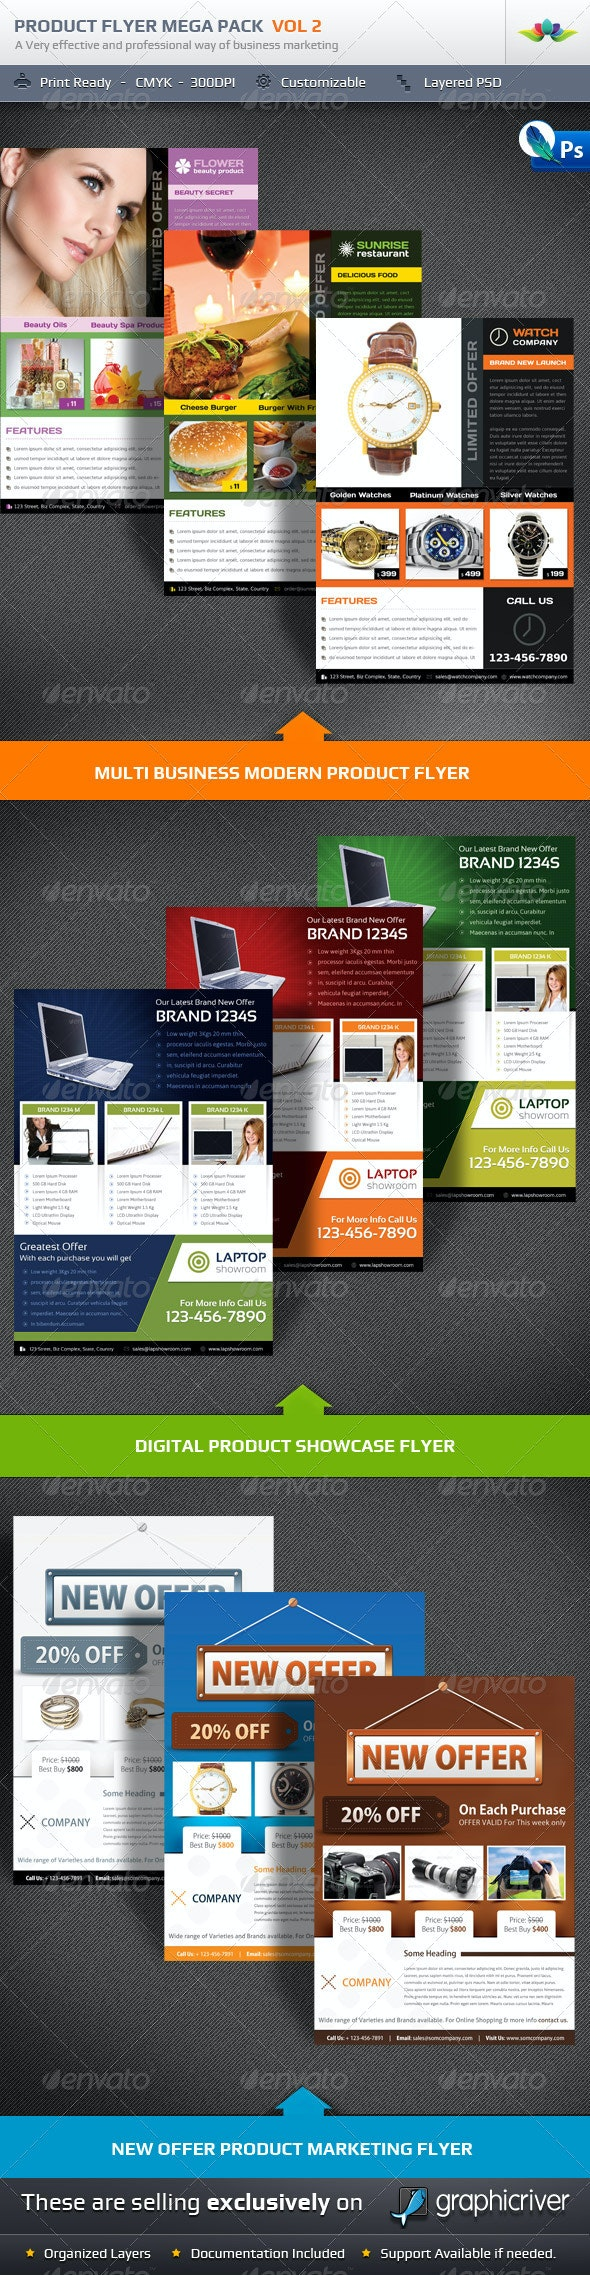 Product Flyer Mega Pack Vol2 - Corporate Flyers